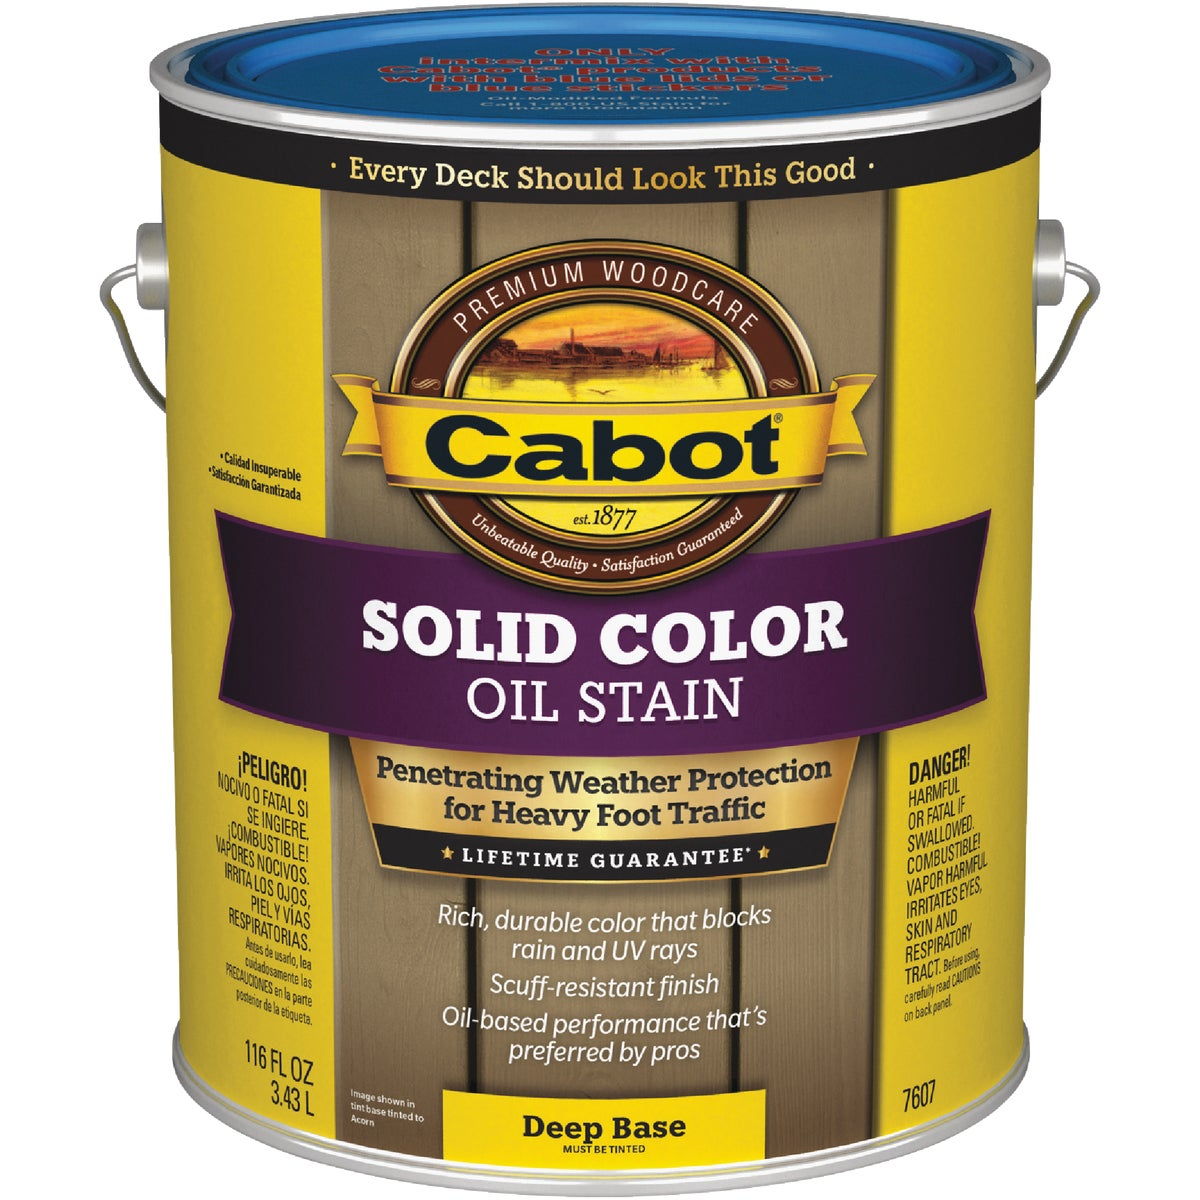 DEEP BS SOLID DECK STAIN - 140.0007607.007 by Valspar Corp